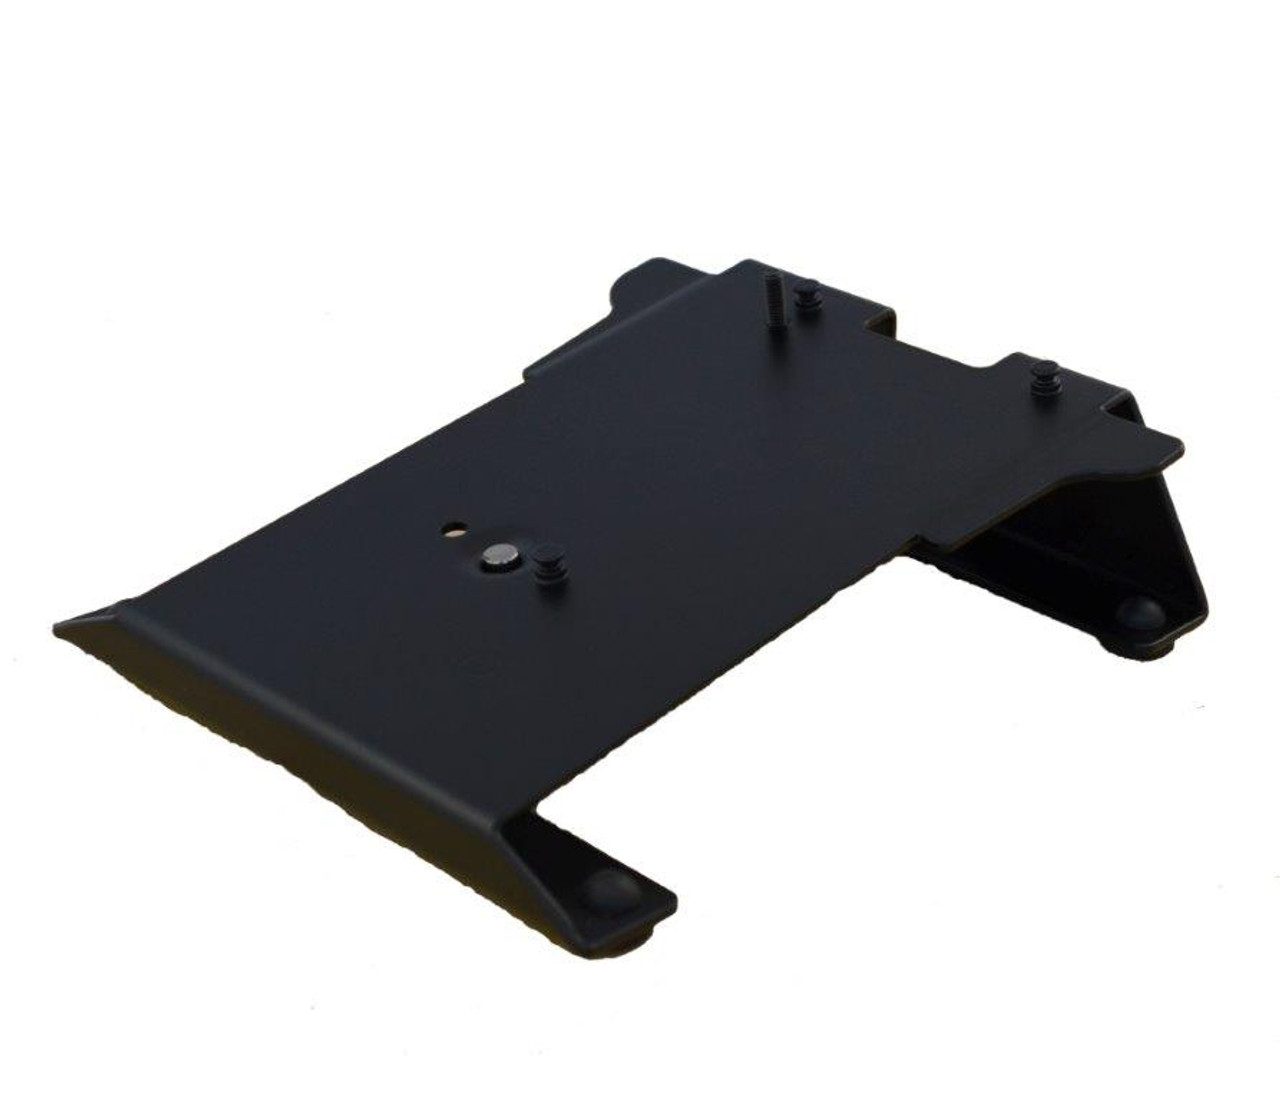 Verifone MX915 Credit Card Wedge Stand Fixed Angle by Swivel Stands